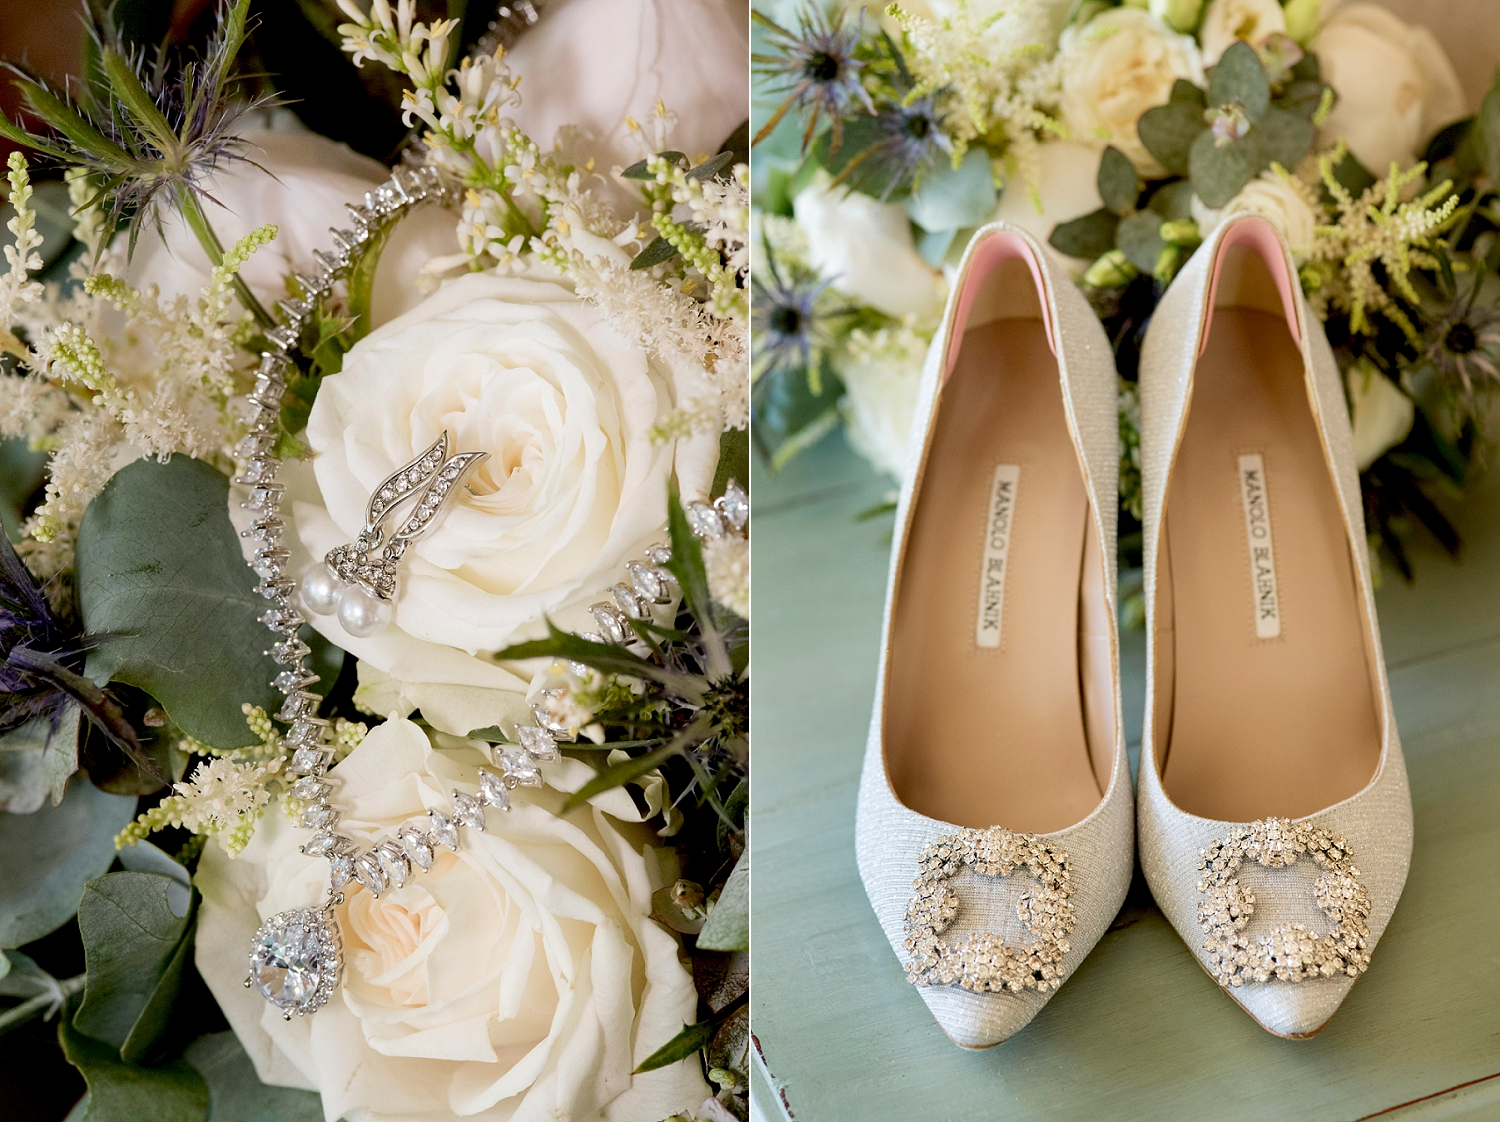 07_manolo blanik wedding shoes.jpg